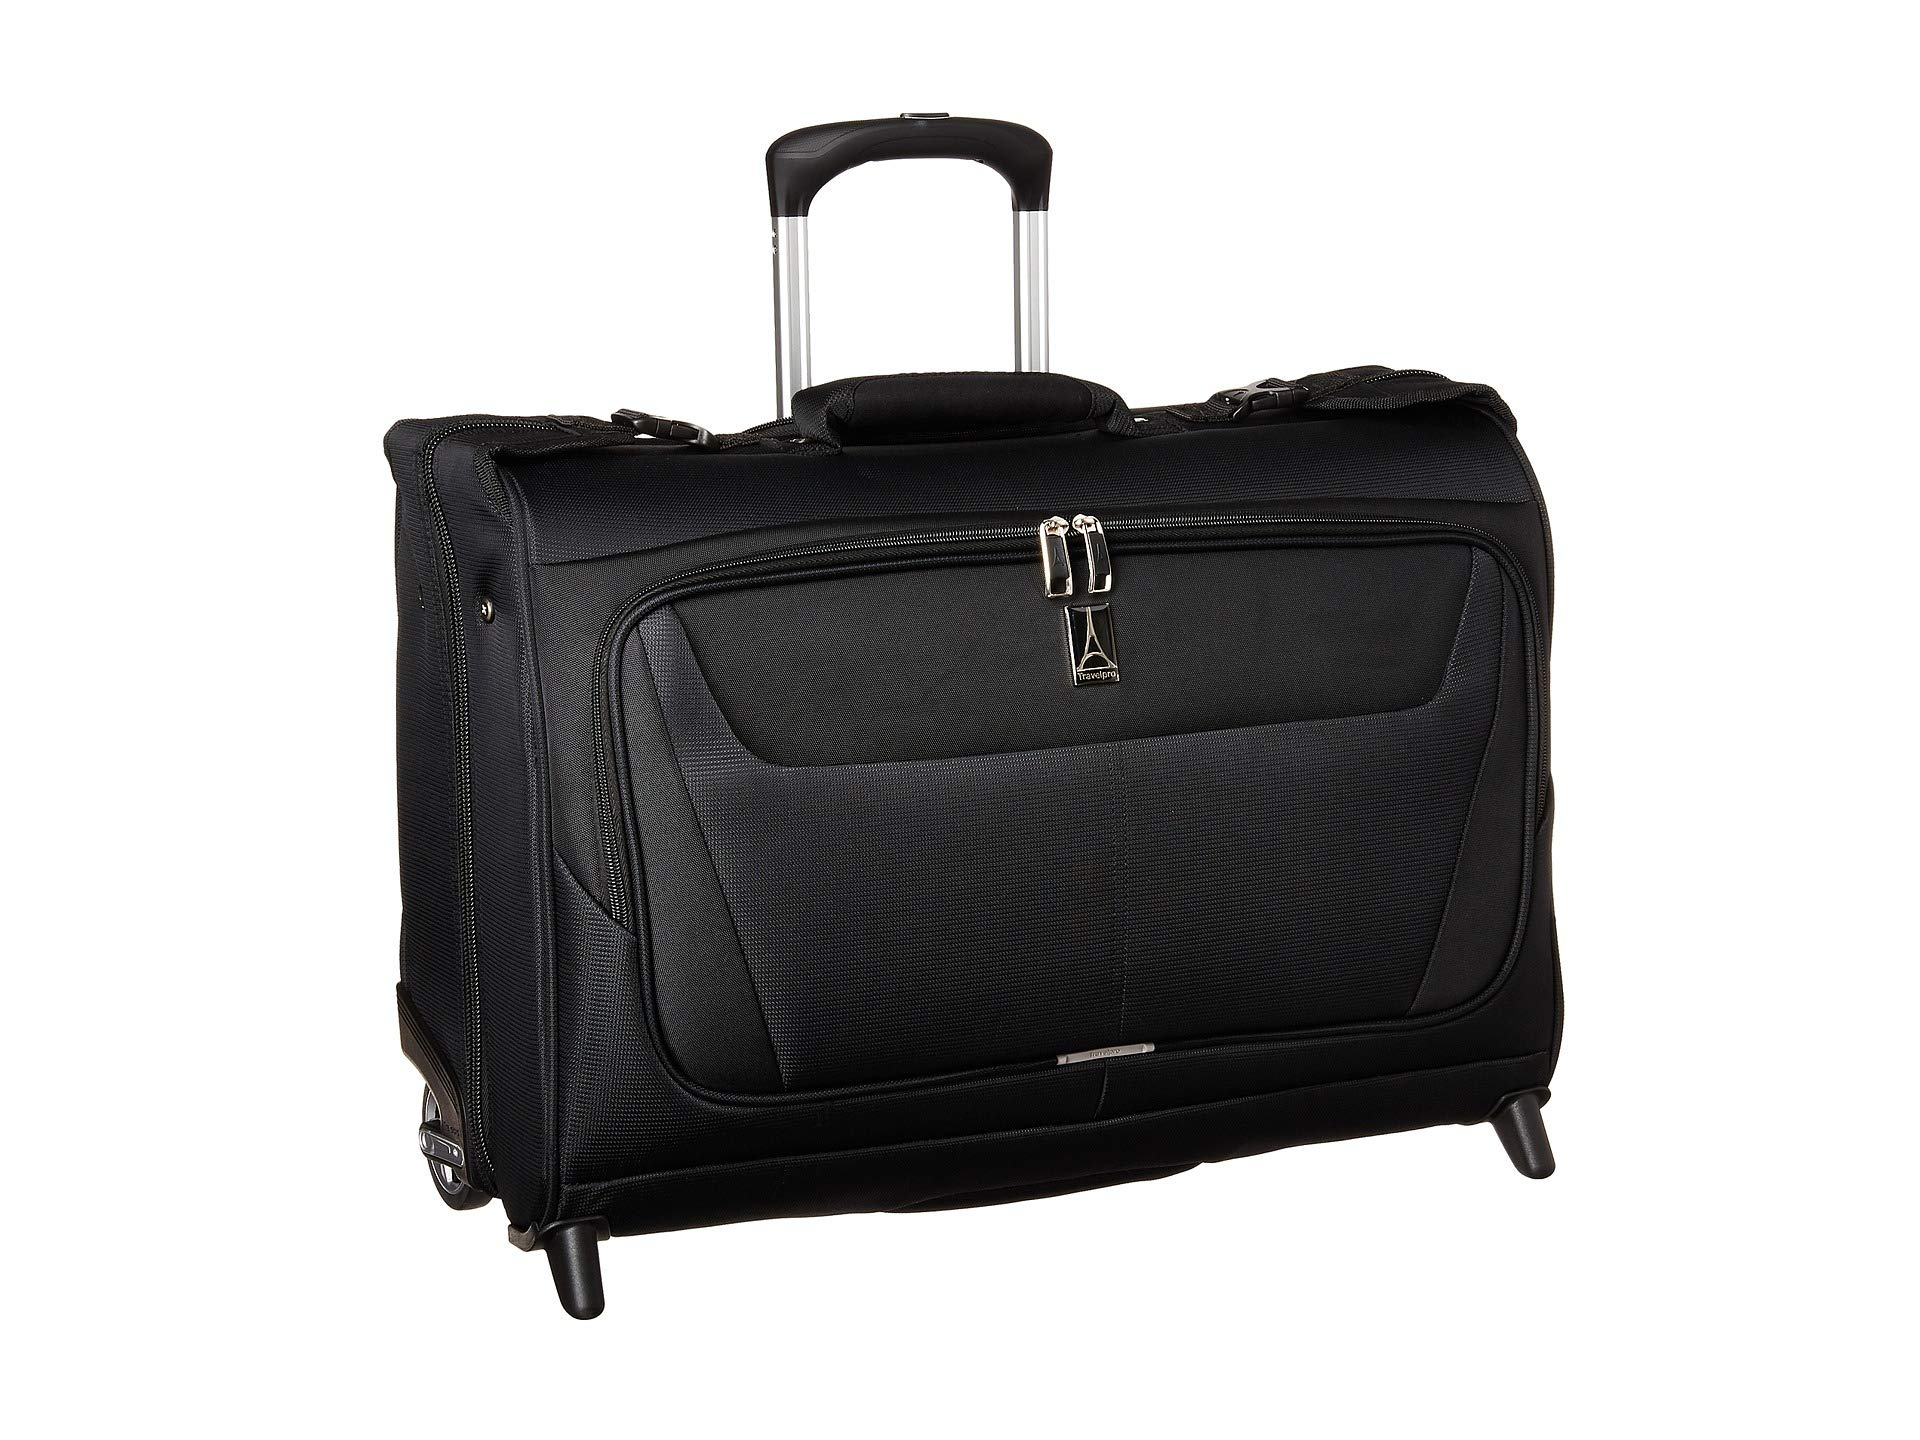 on Carry Black Maxlite® 5 Garment Bag Rolling Travelpro qP4tAWnW